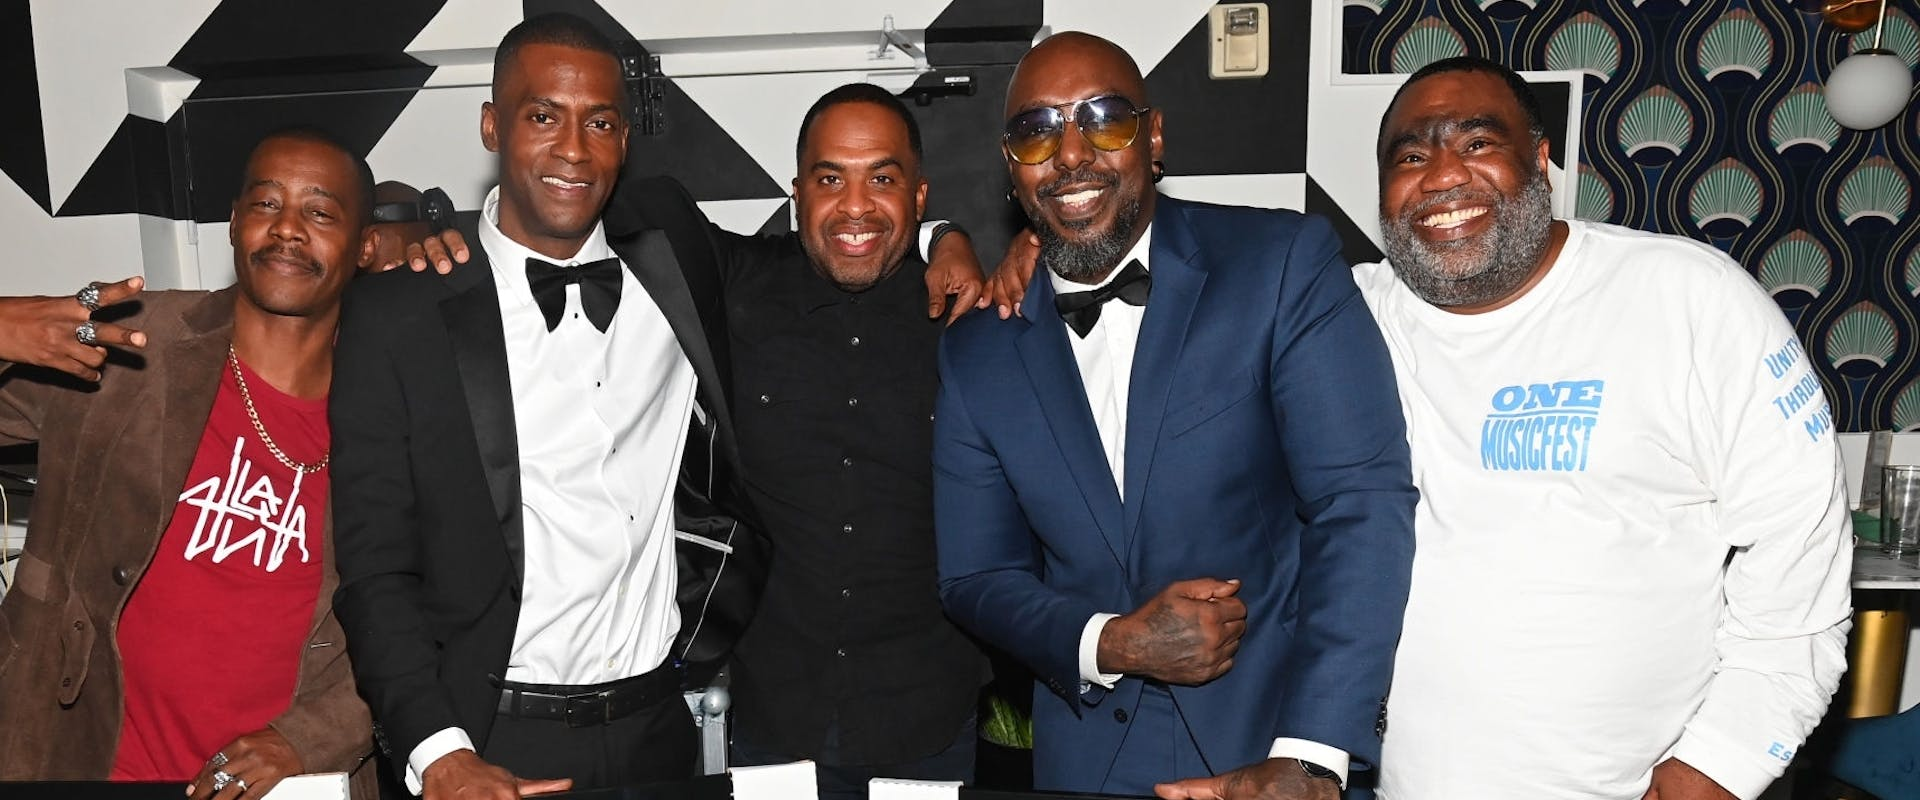 (L-R) Ray Murray, Rico Wade, Jason Carter, Sleepy Brown, and Moetown Lee attend 2021 ONE MusicFest Honors Dinner at Breakfast At Barney's on October 08, 2021 in Atlanta, Georgia. (Photo by Paras Griffin/Getty Images)